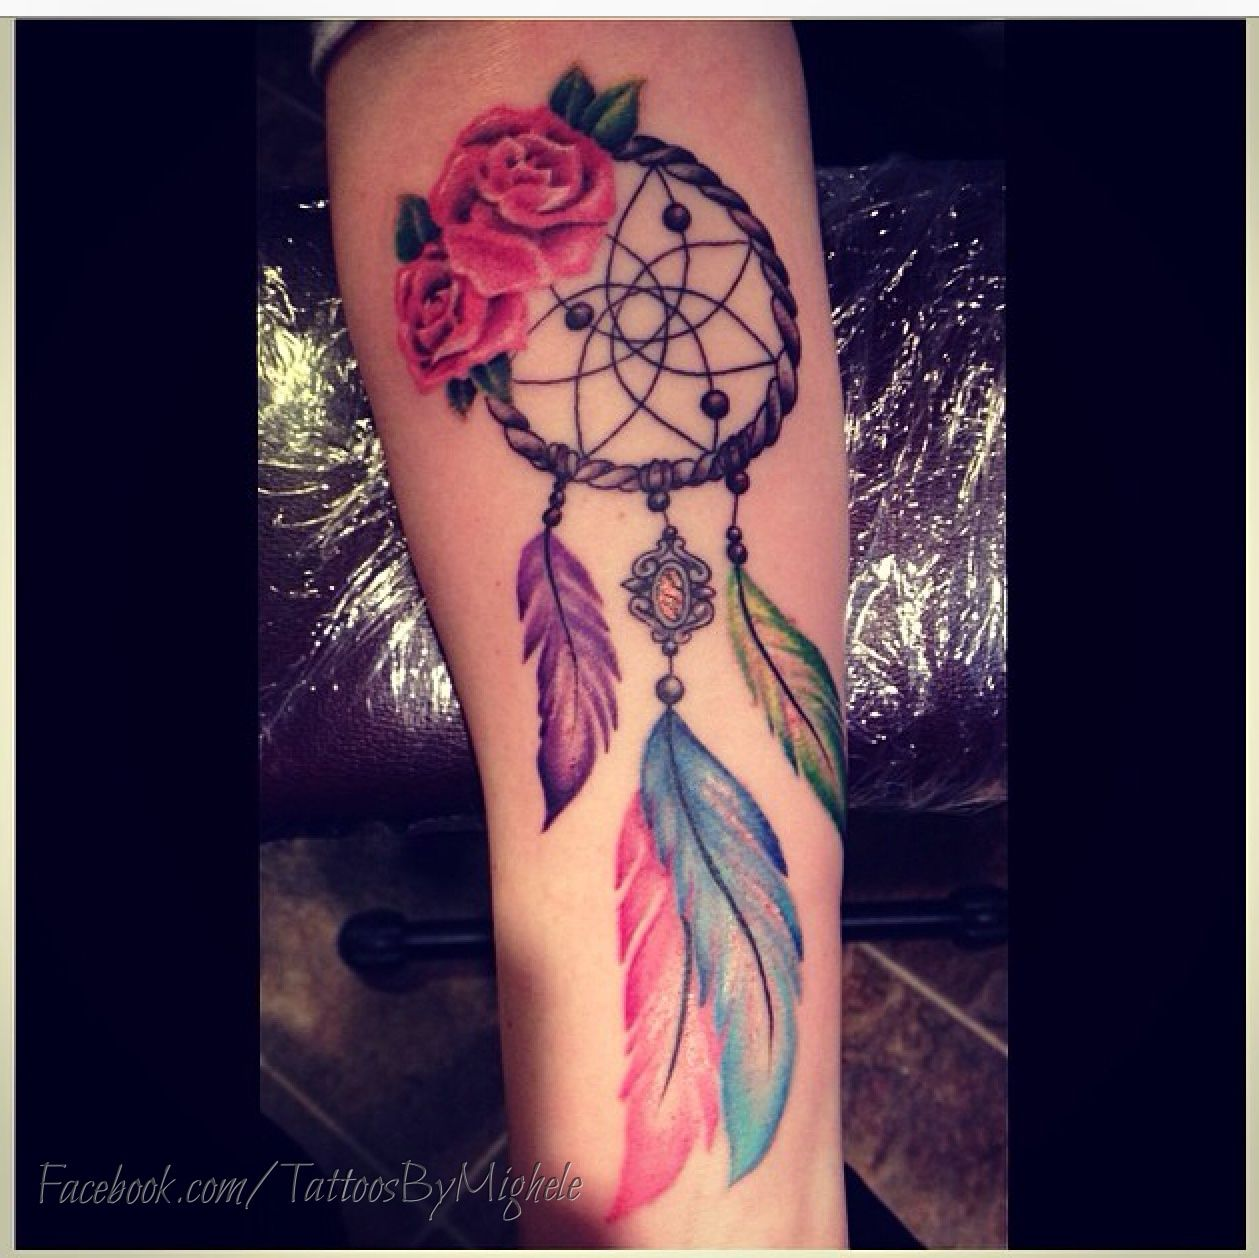 colourful dream catcher tattoo. i want something like this but on